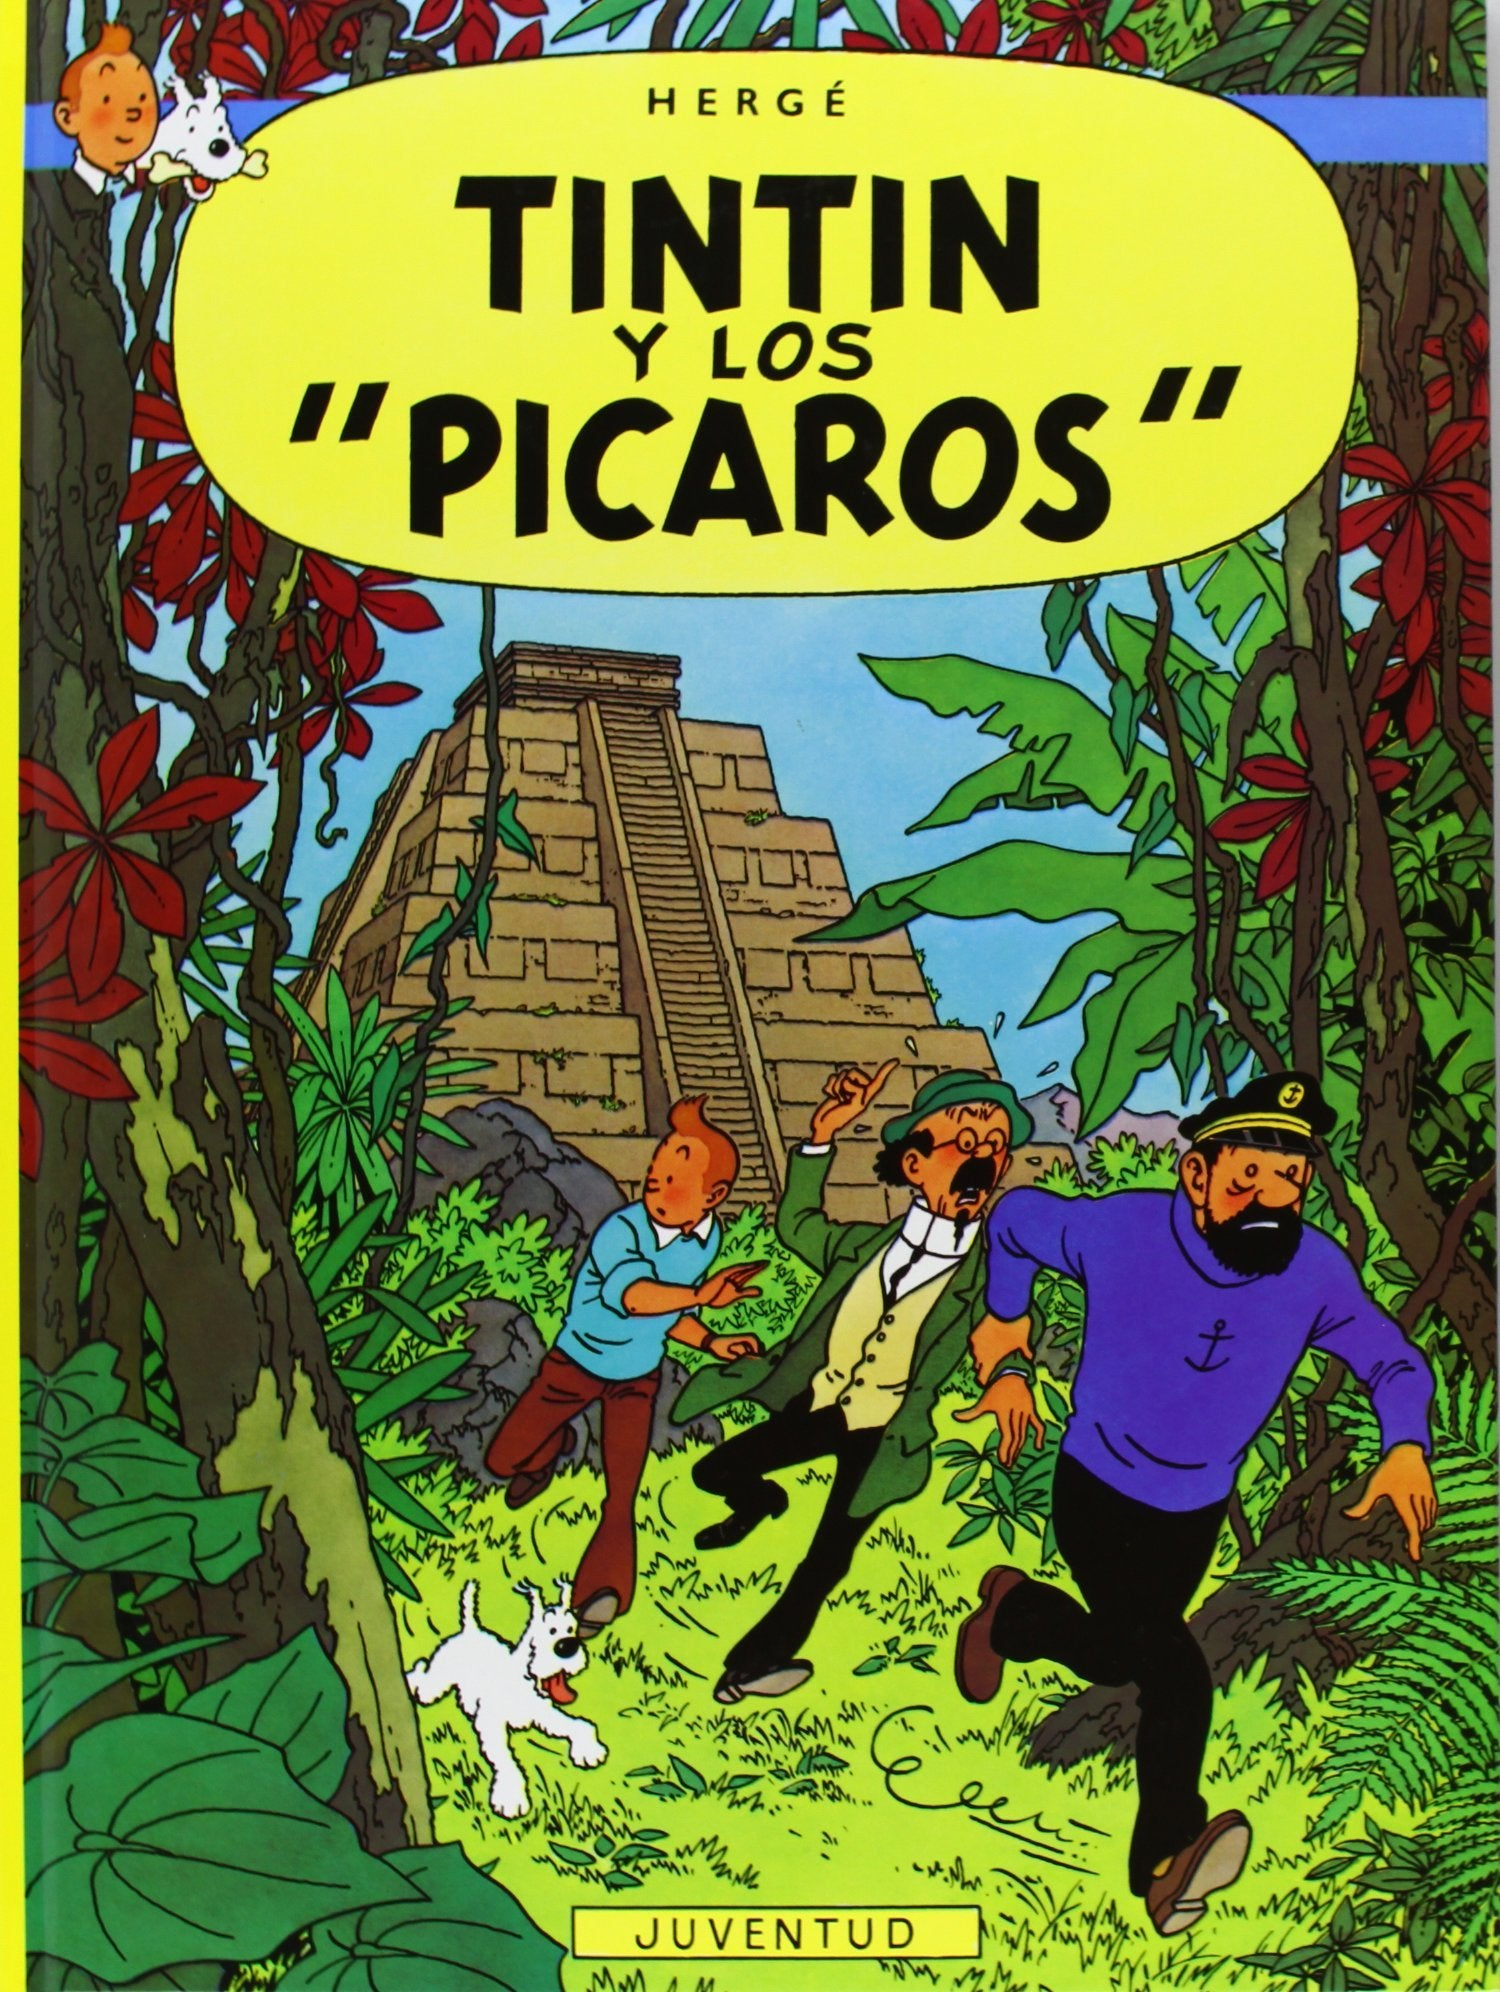 SPANISH ALBUM #23: Picaros